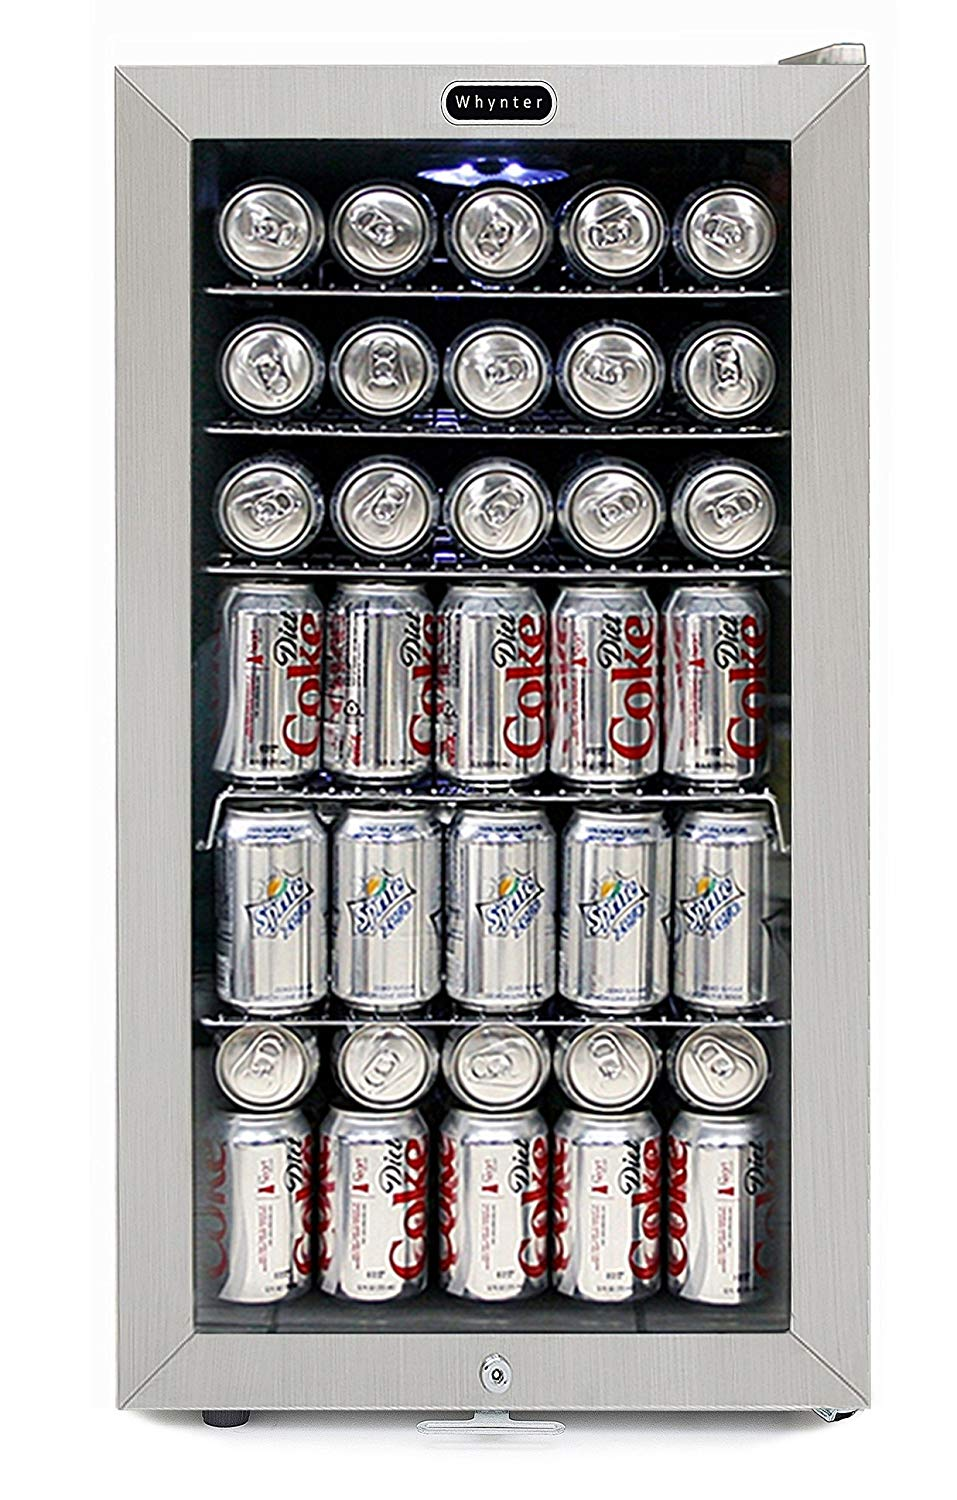 Top 10 Best Beverage Refrigerators in 2020 Reviews and Buyers Guide